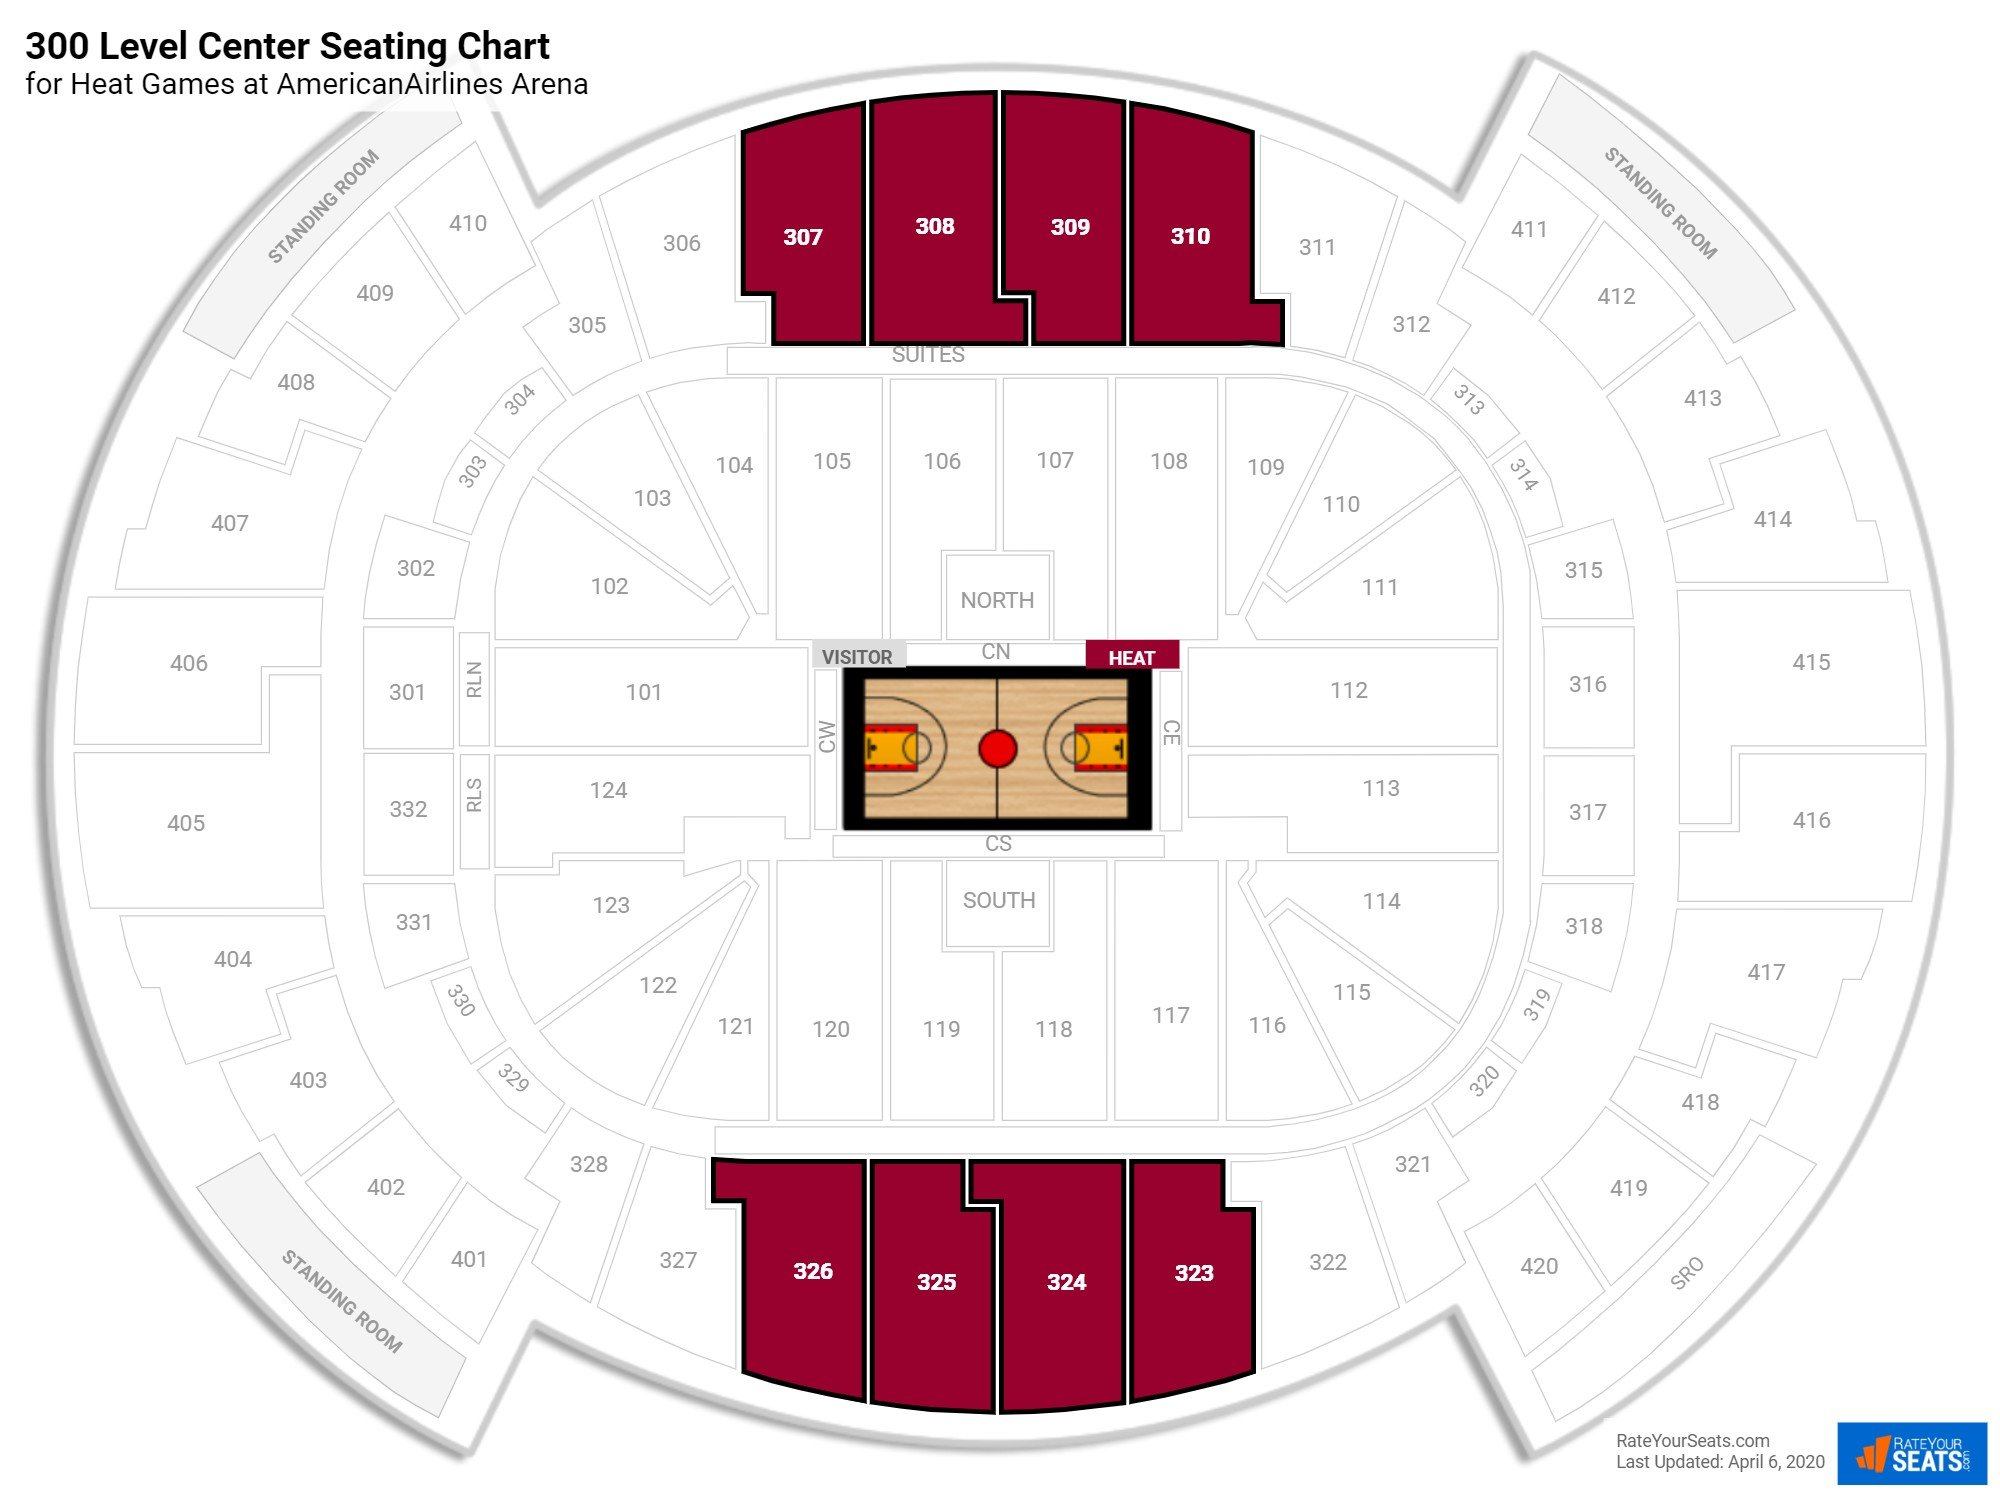 AmericanAirlines Arena 300 Level Center seating chart